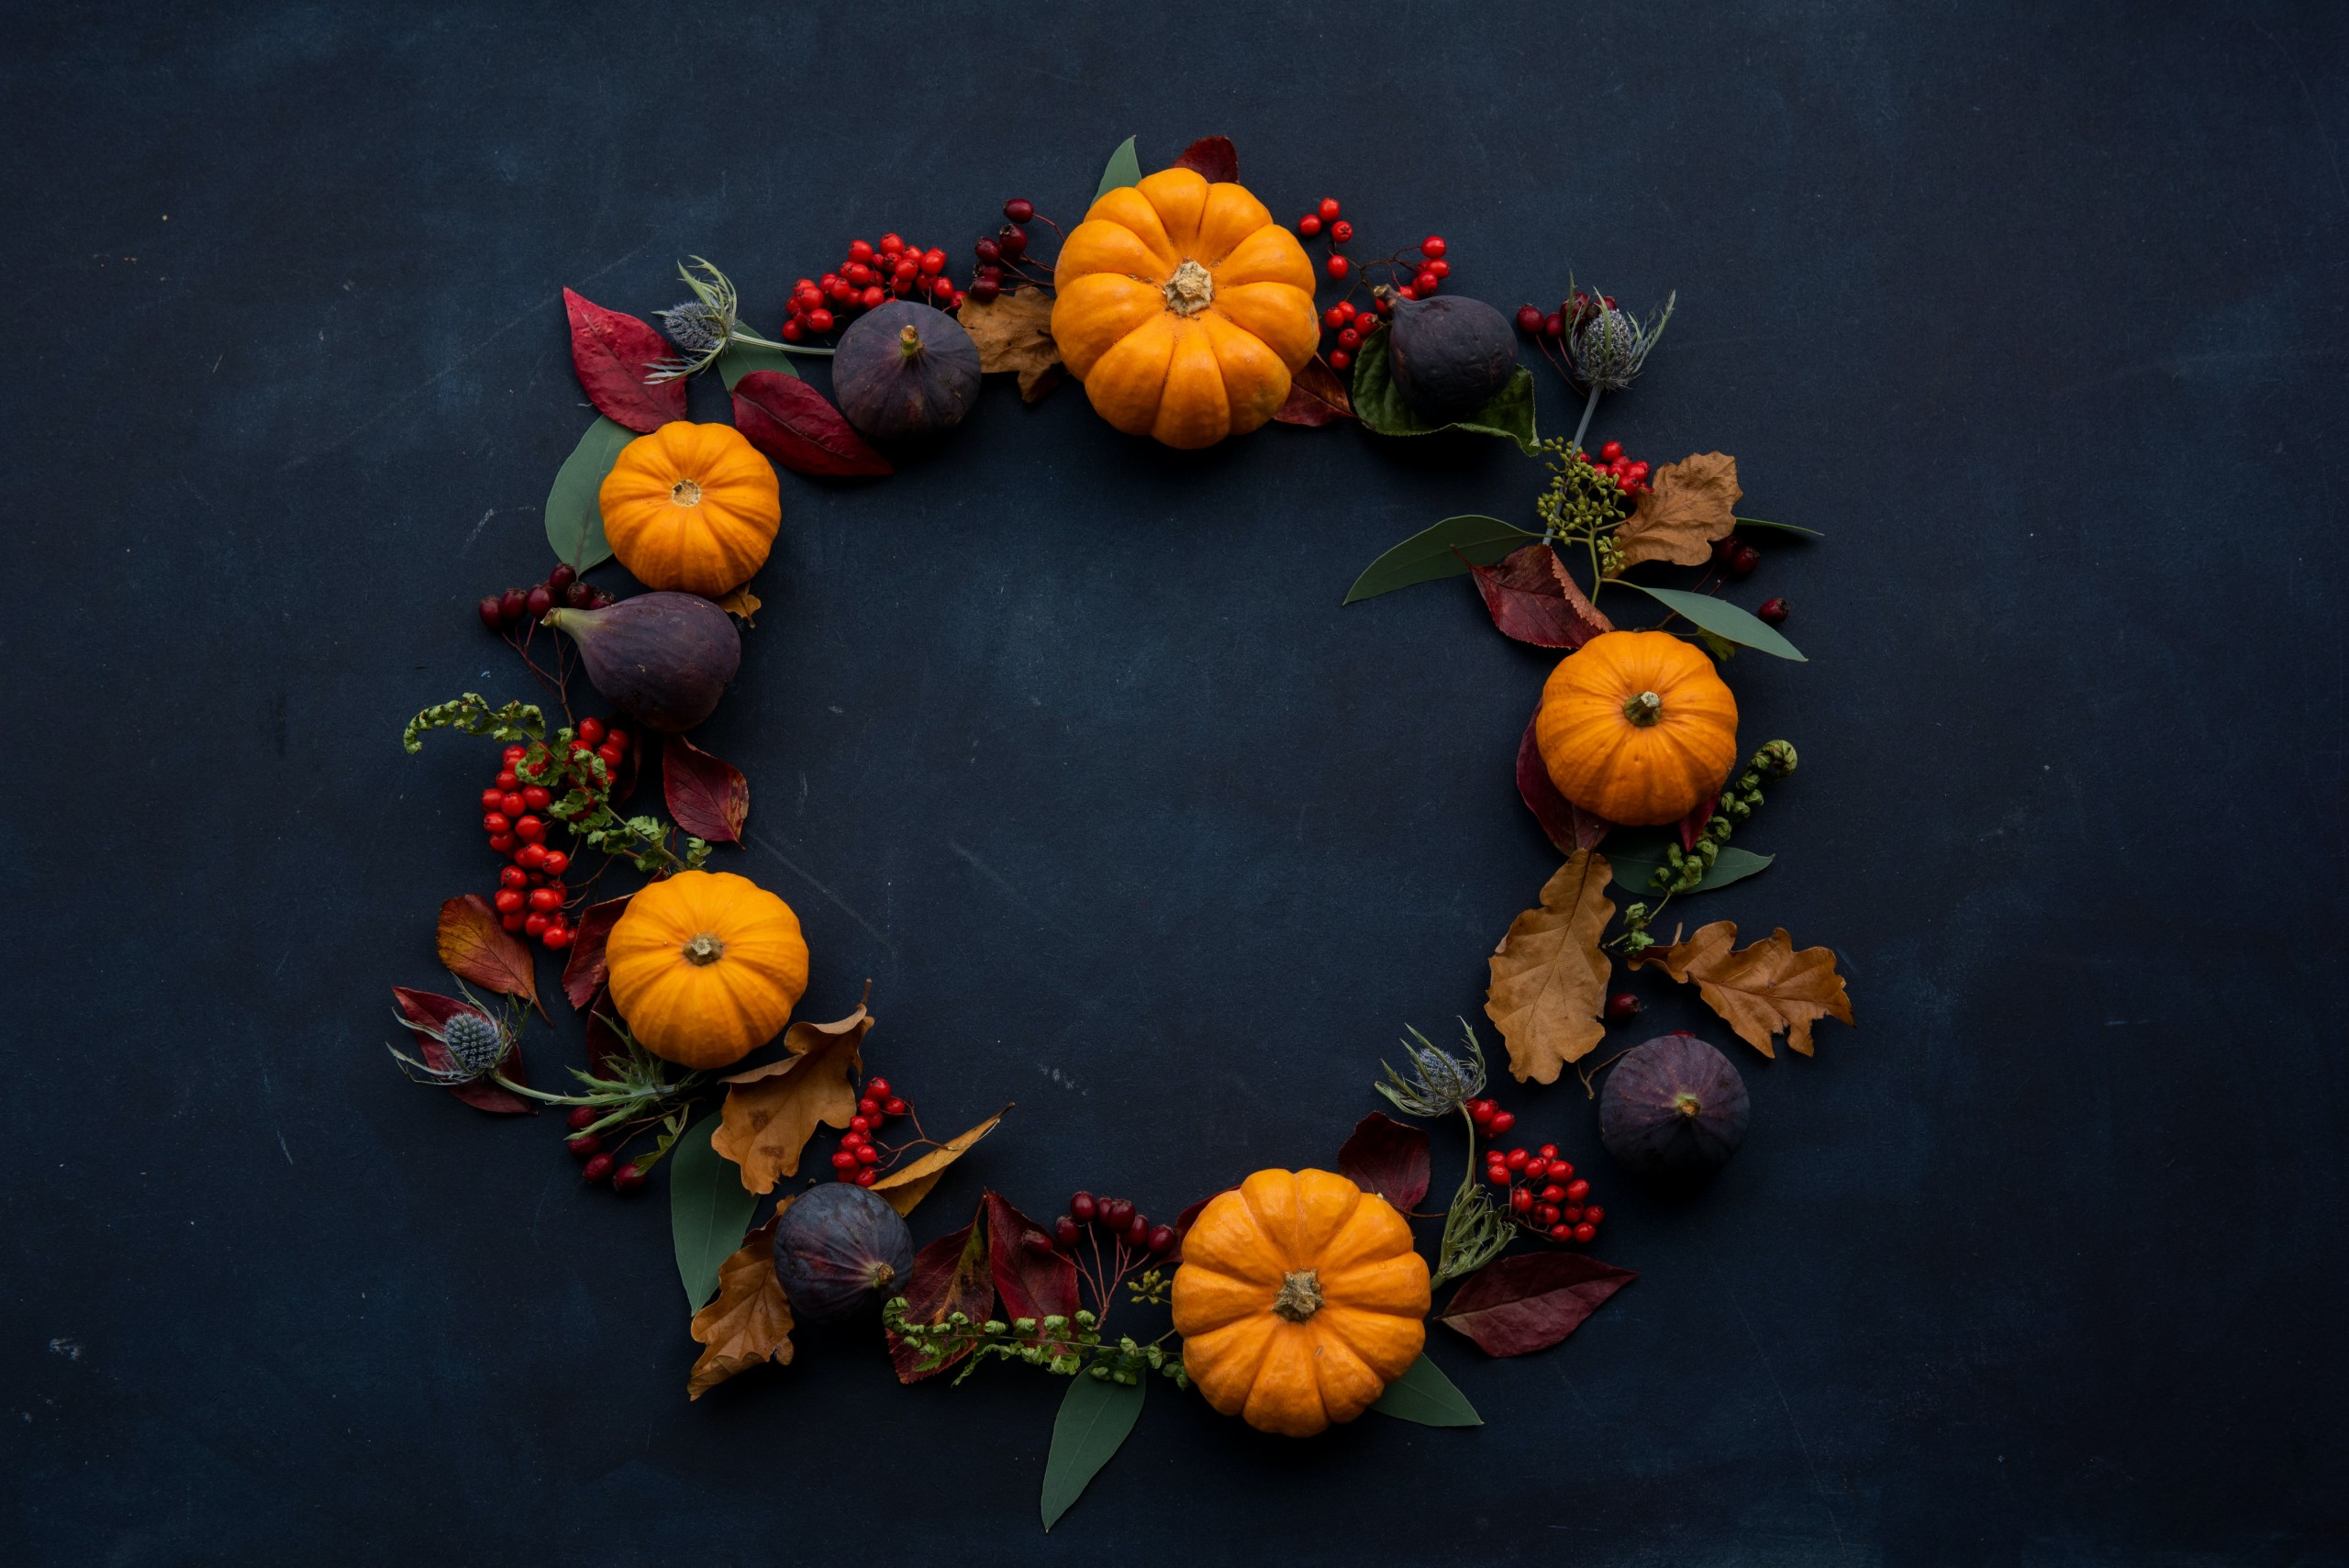 Fall Wreath with orange pumpkins, berries, and red, orange, and green leaves. Black background.